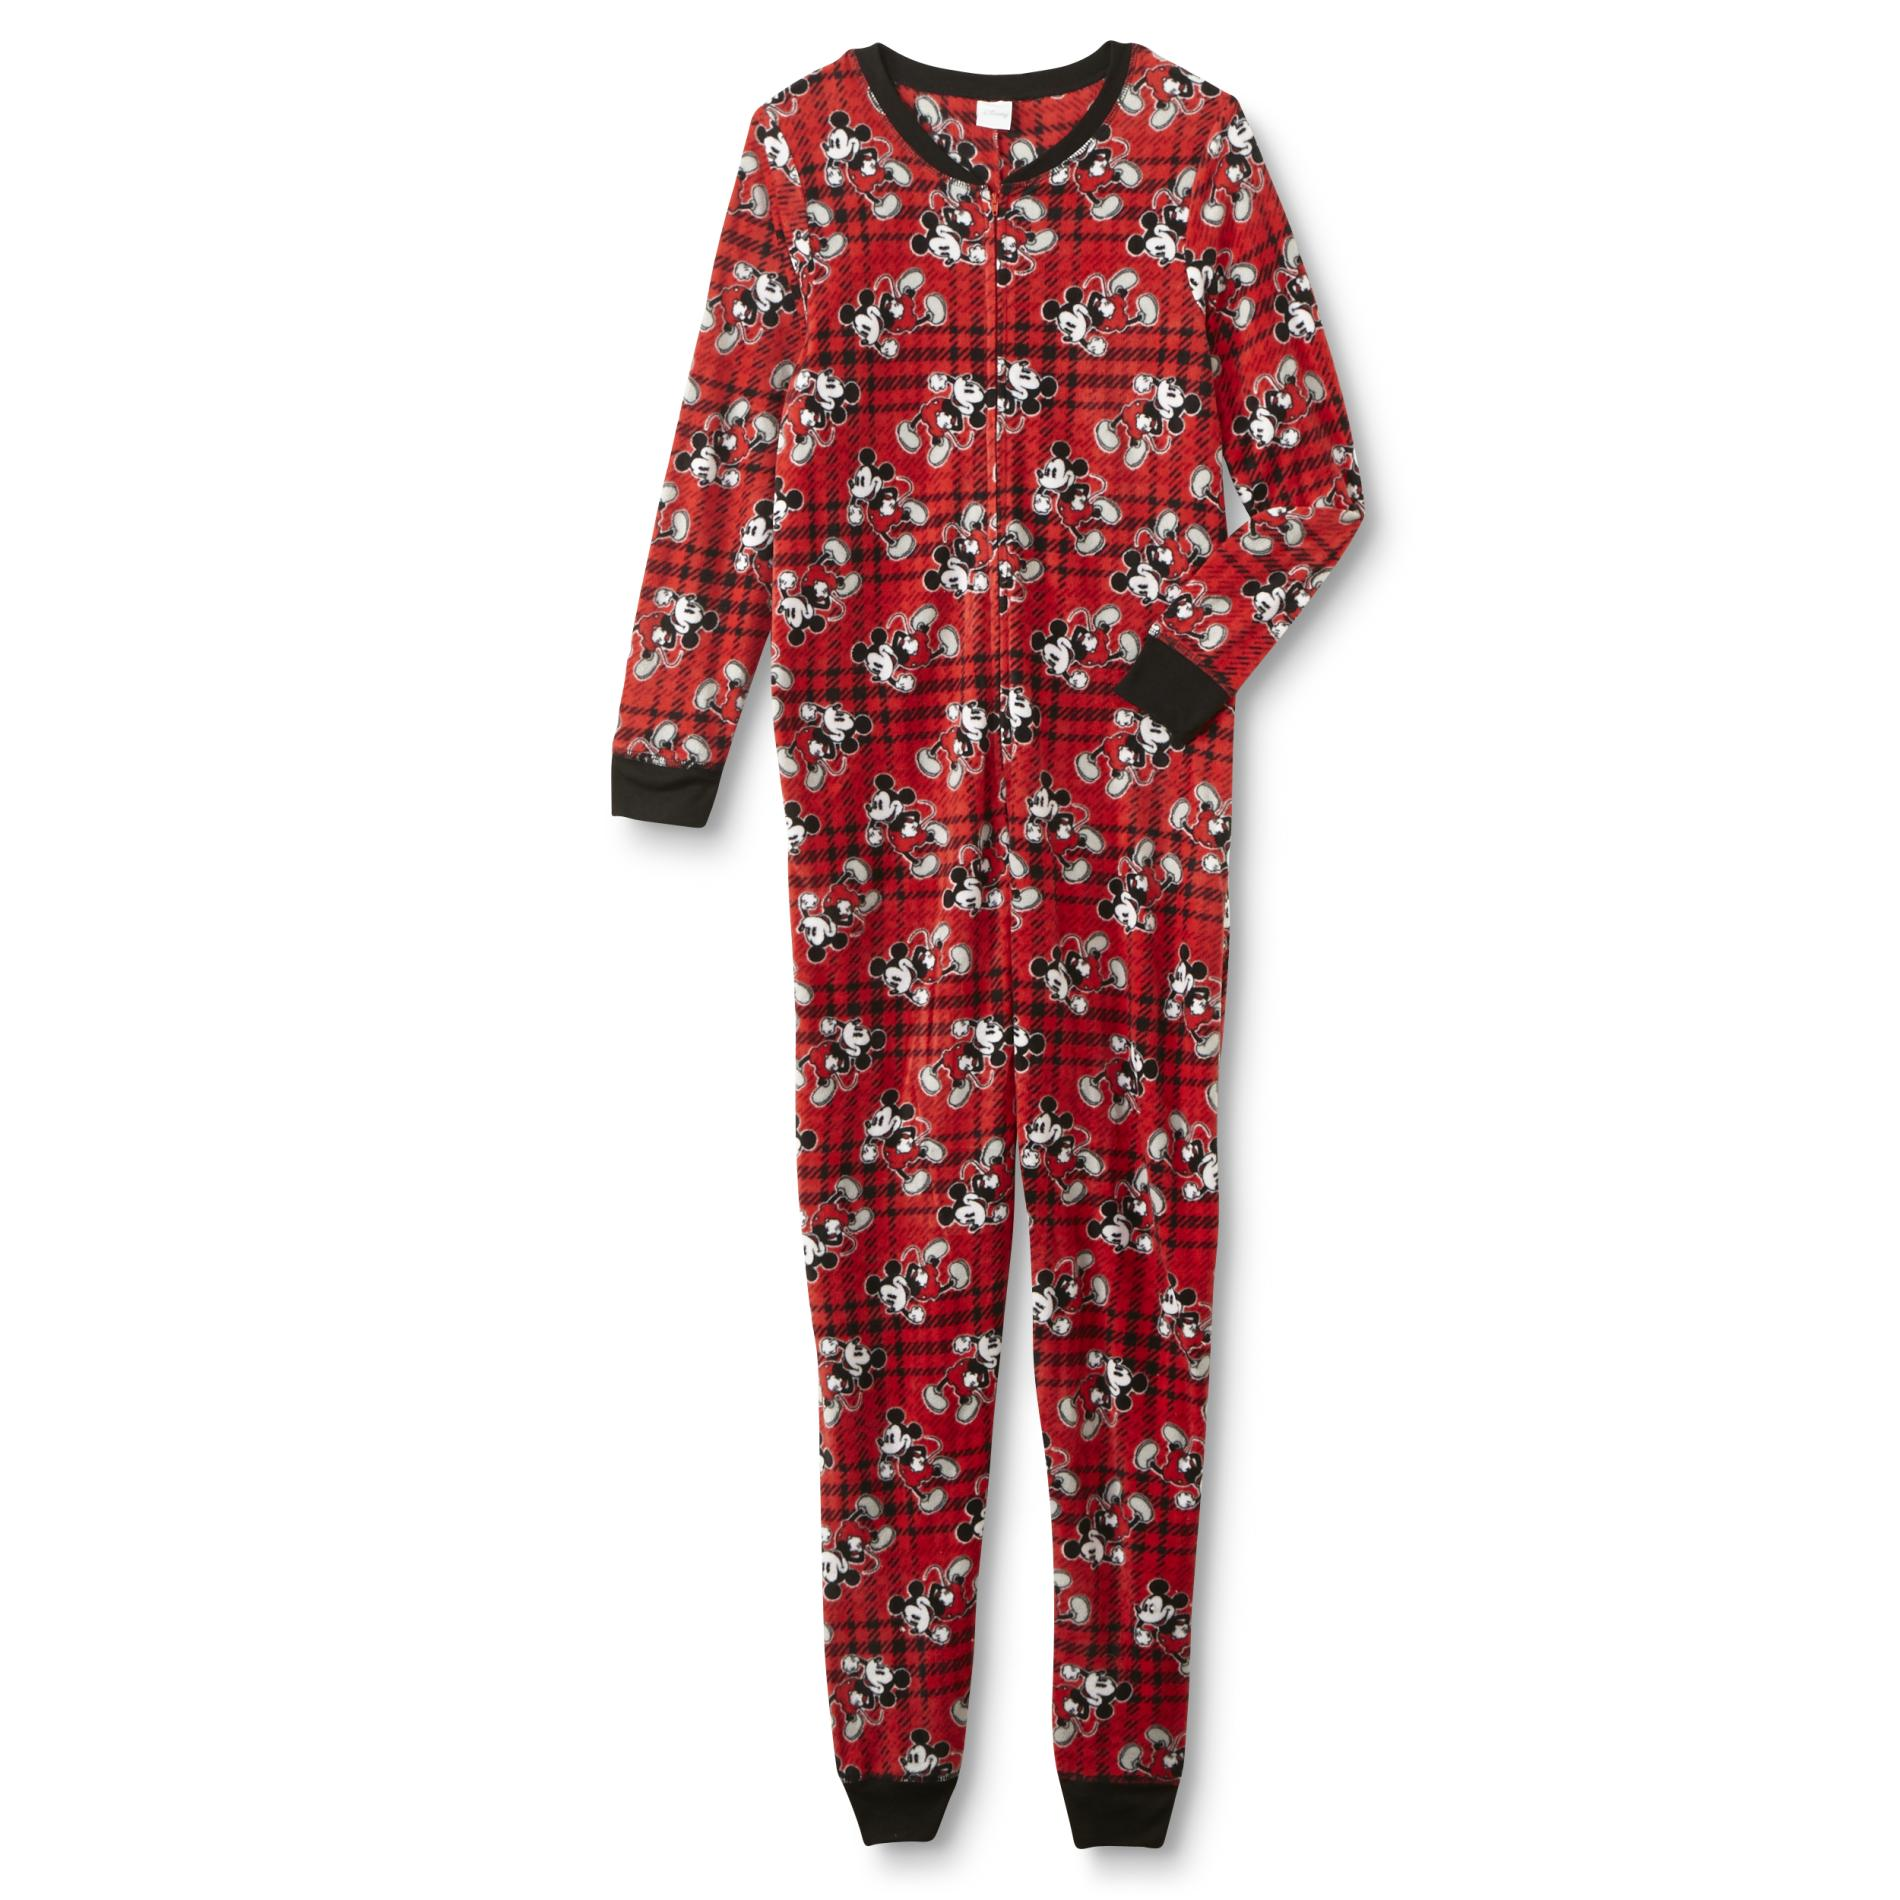 2e1a48c07b UPC 714147326878 product image for Disney Mickey Mouse Women s One-Piece  Pajamas